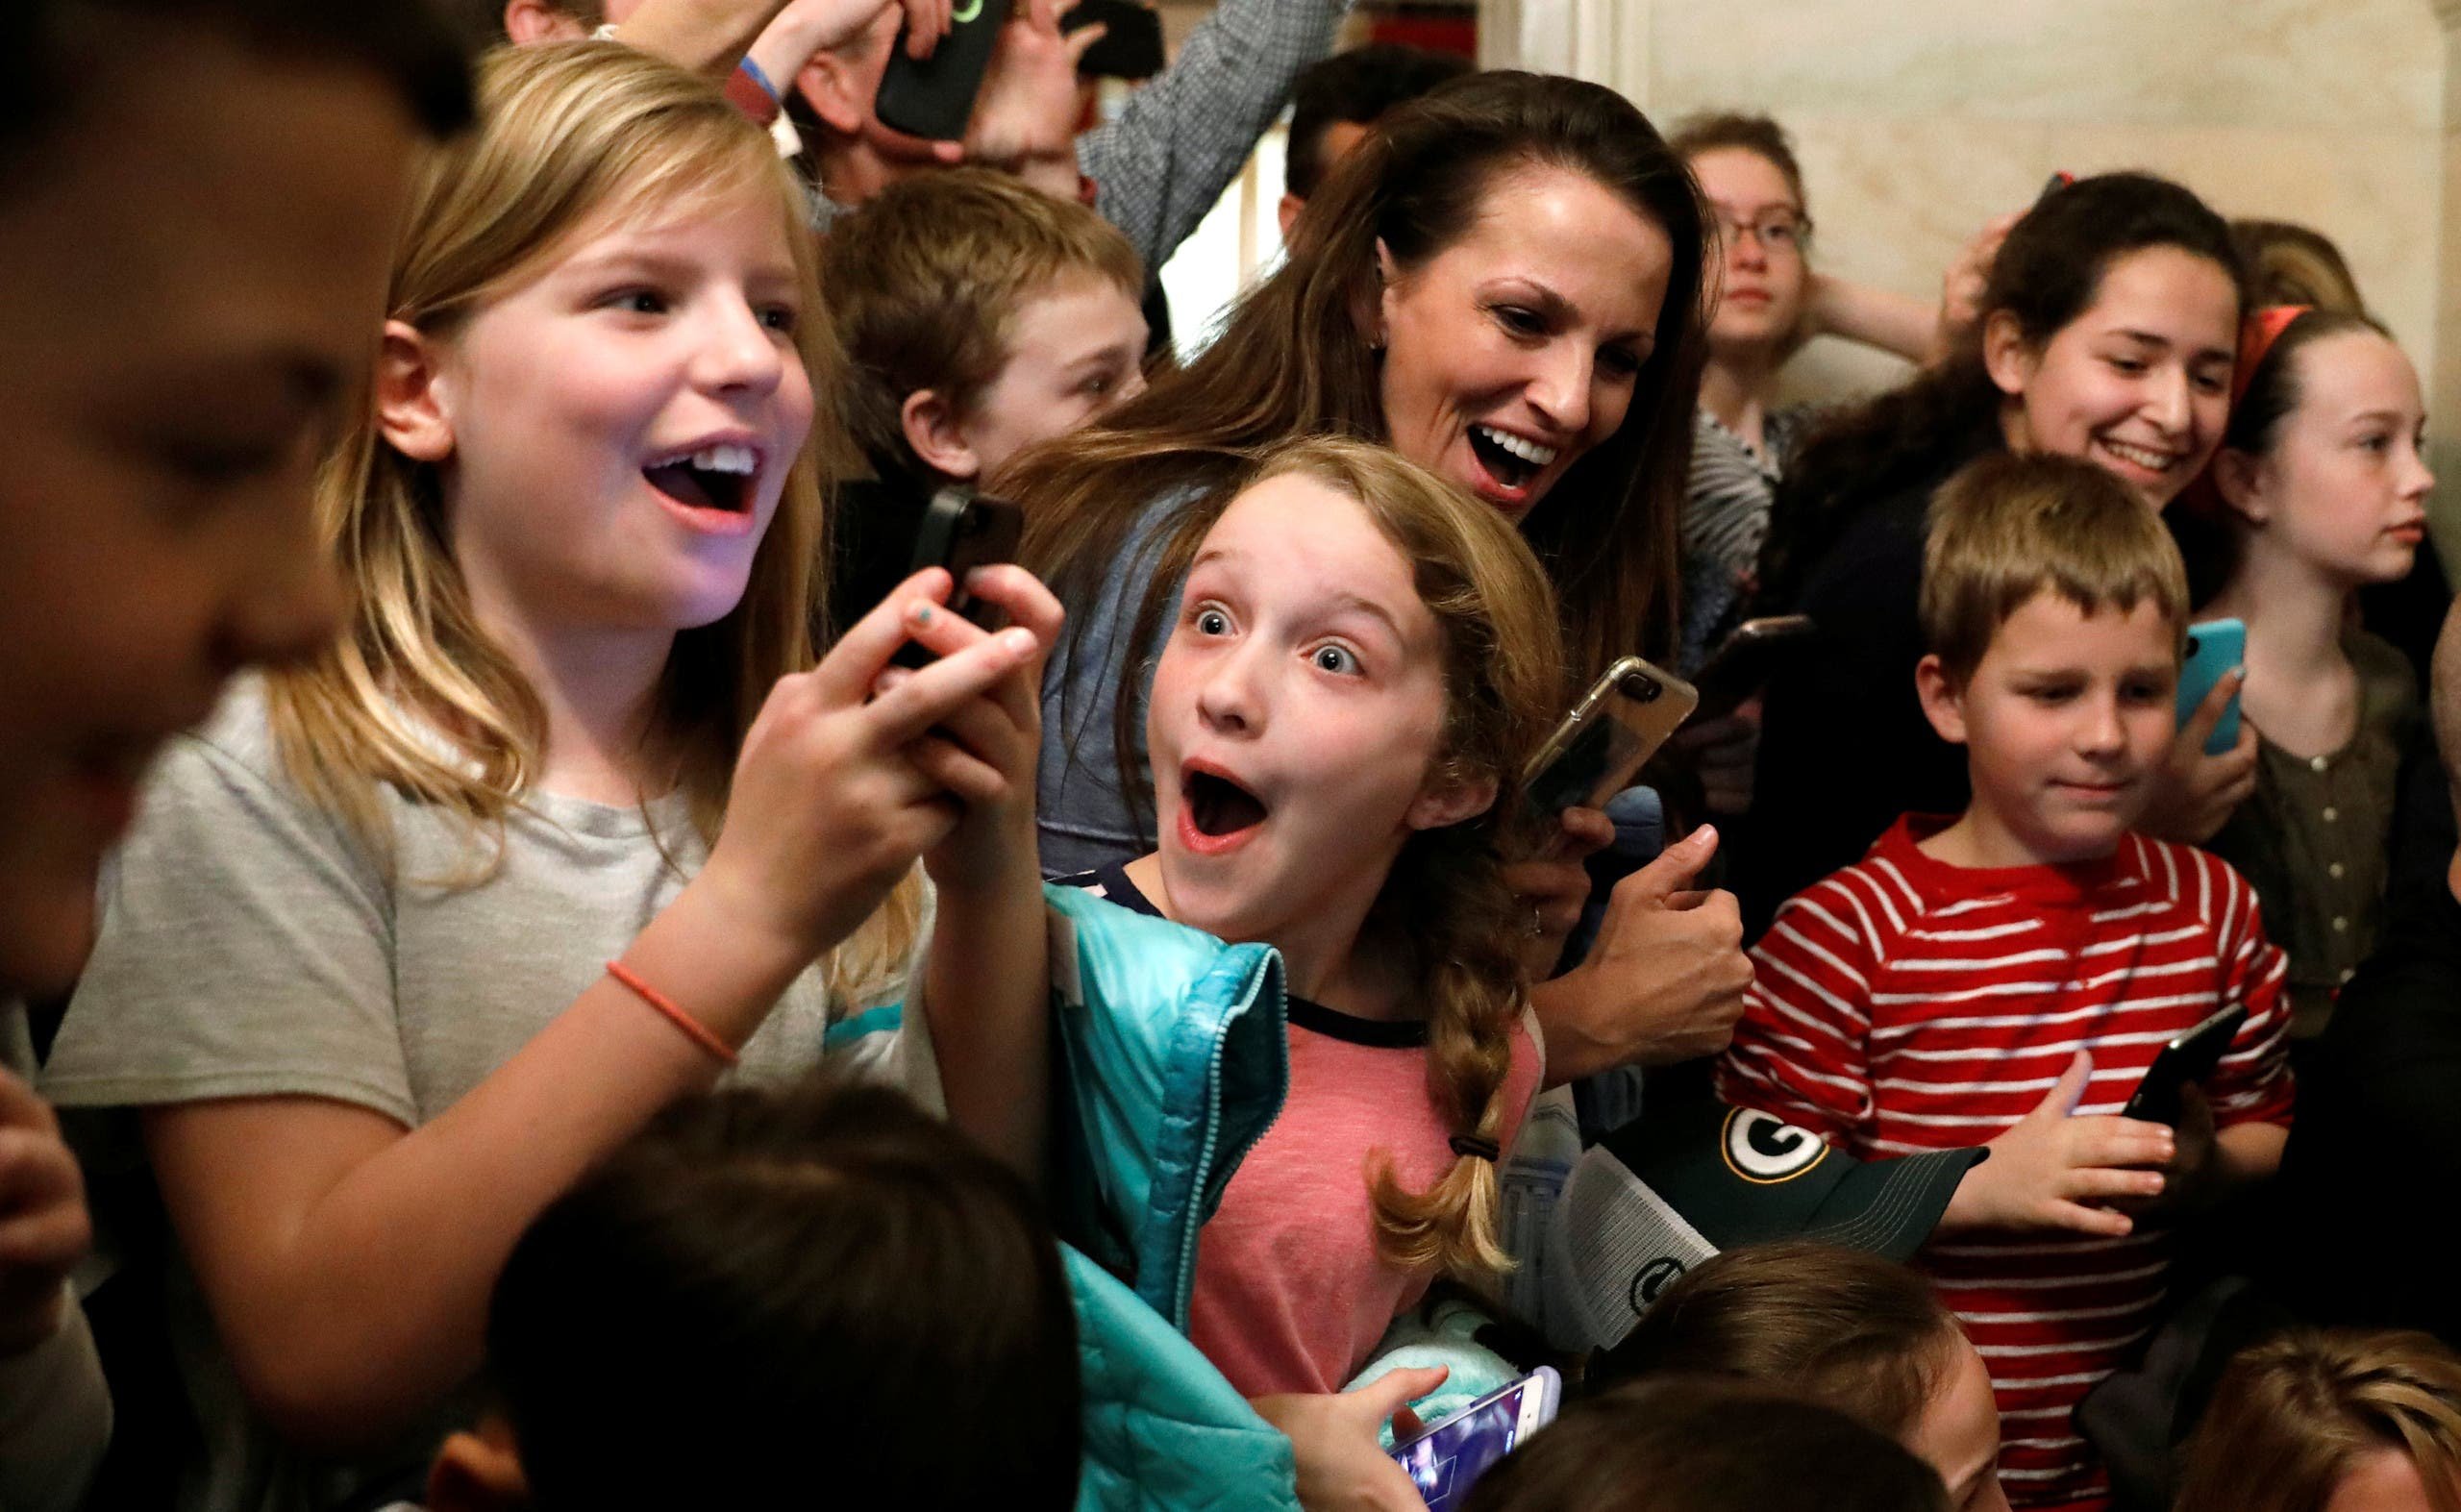 A young girl reacts after U.S. President Donald Trump made a surprise appearance in front of her White House tour group in Washington, U.S. March 7, 2017